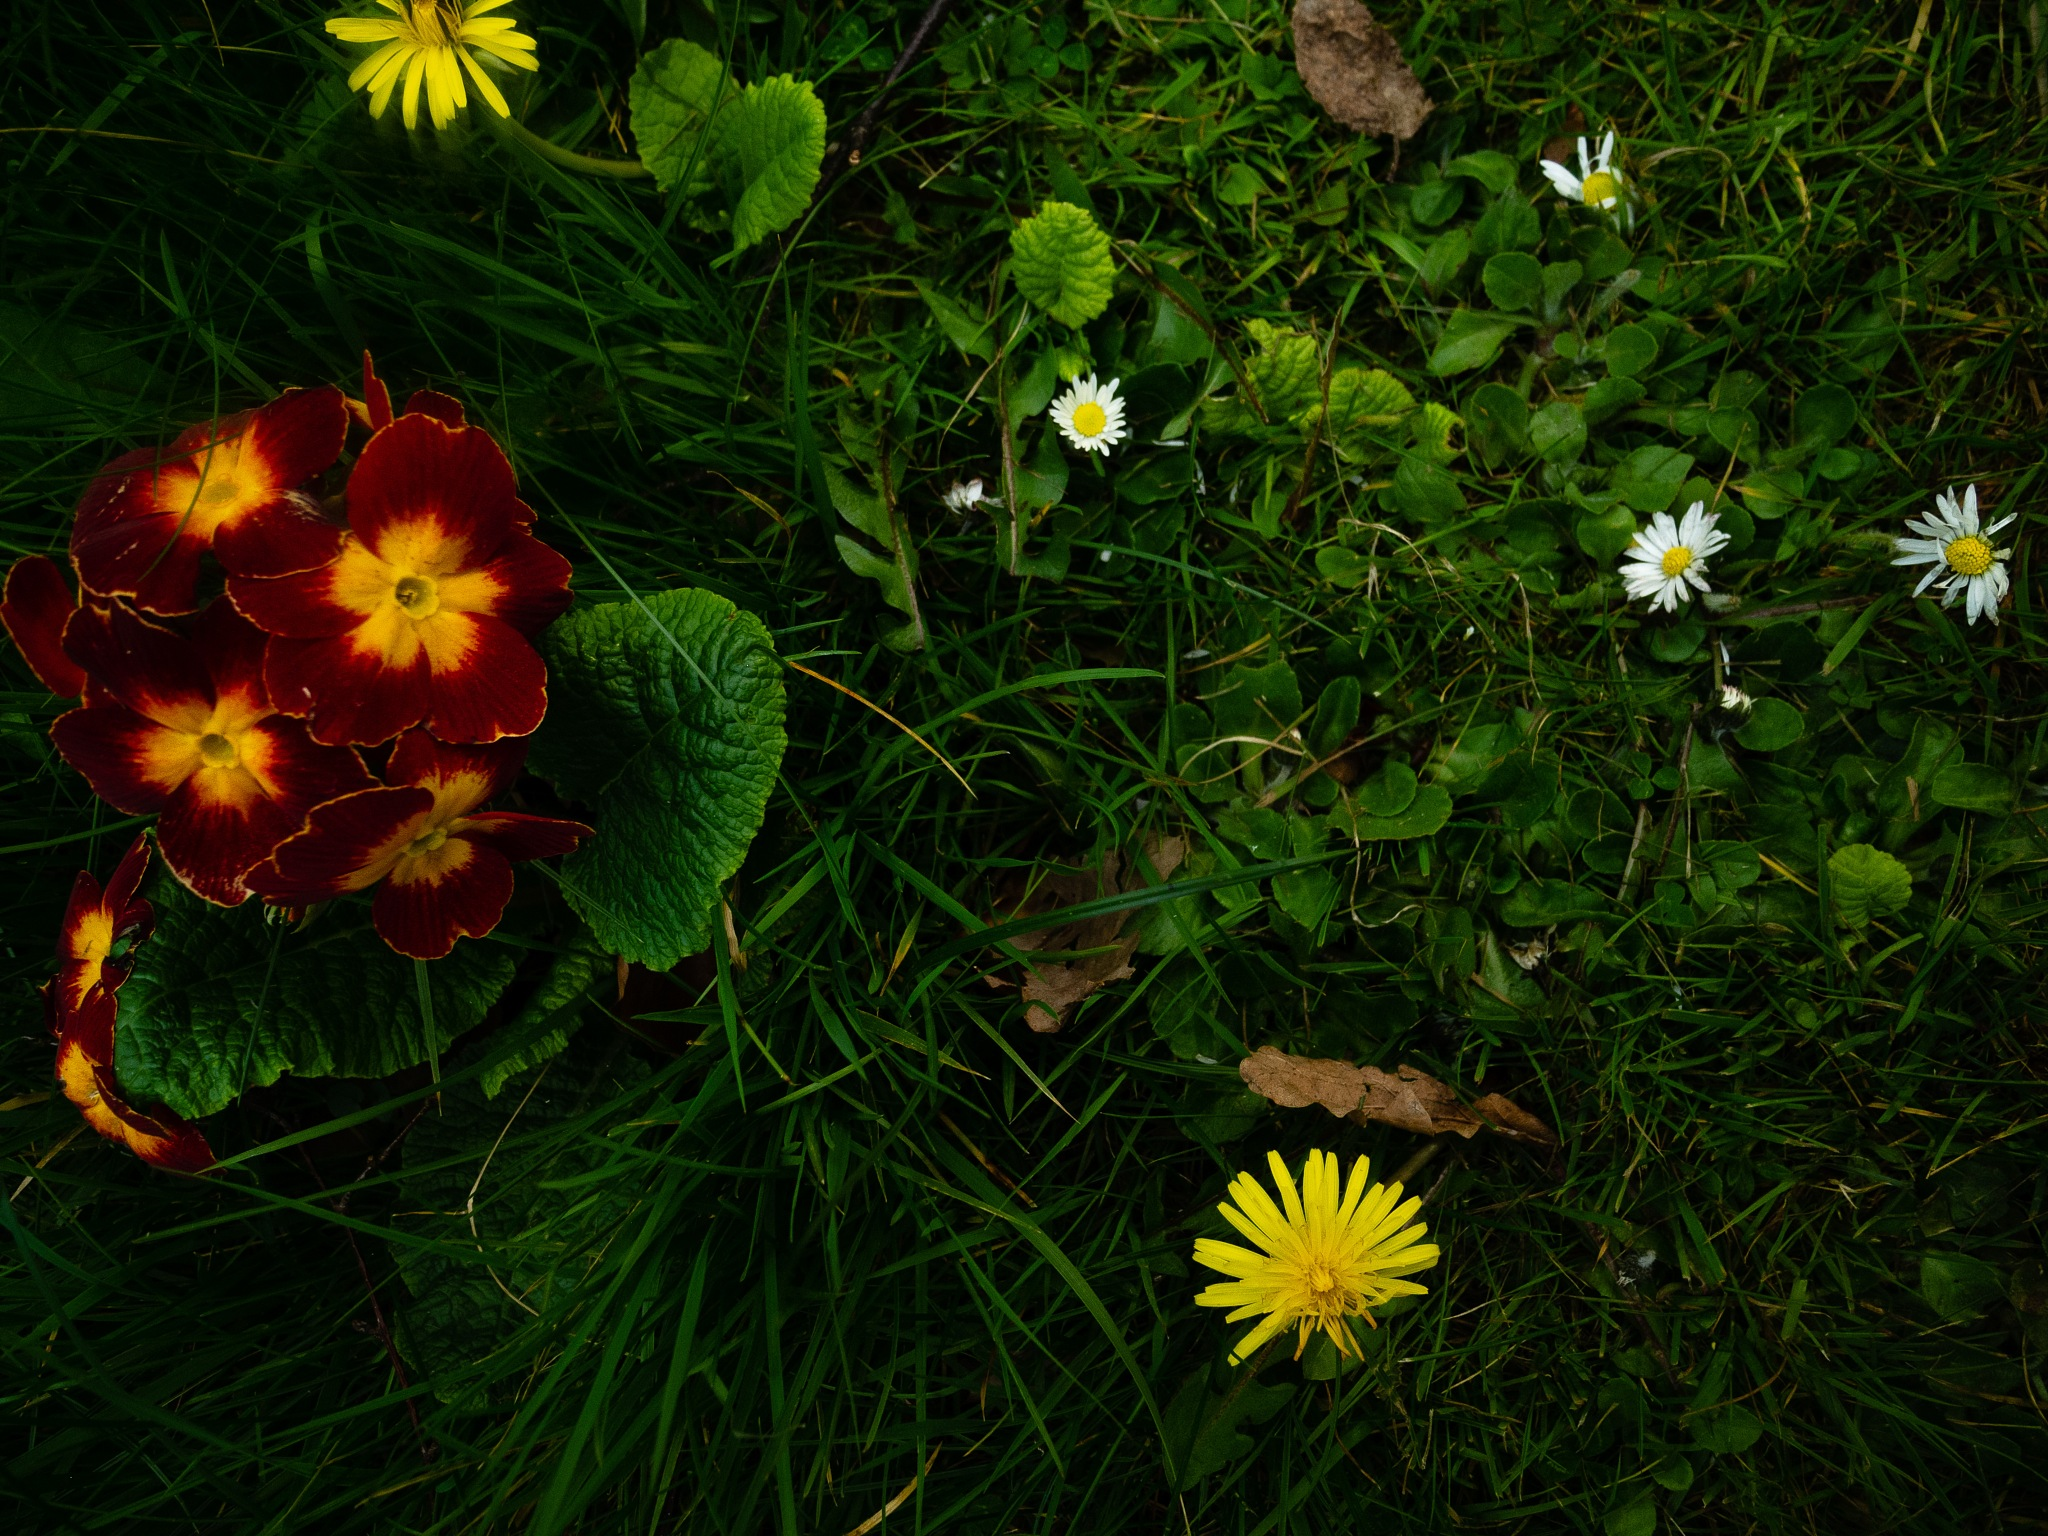 grass and flowers by Amelia Rouse